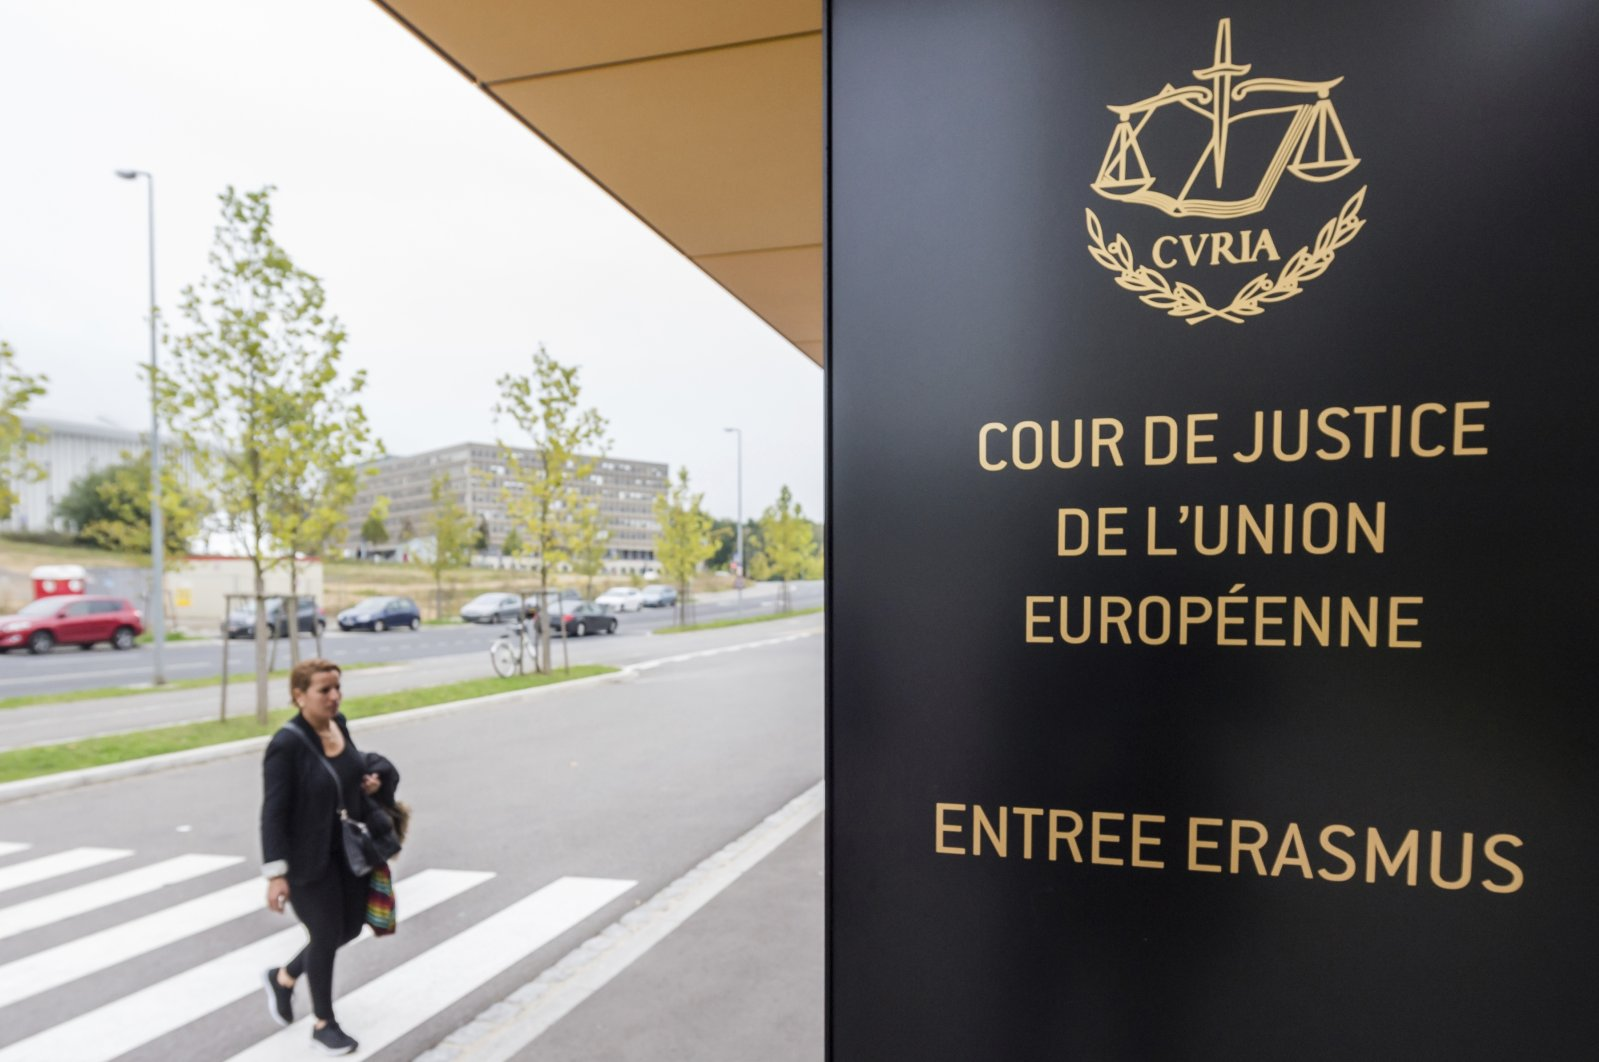 A woman walks by the entrance to the European Court of Justice in Luxembourg, Monday, Oct. 5, 2015. (AP File Photo)